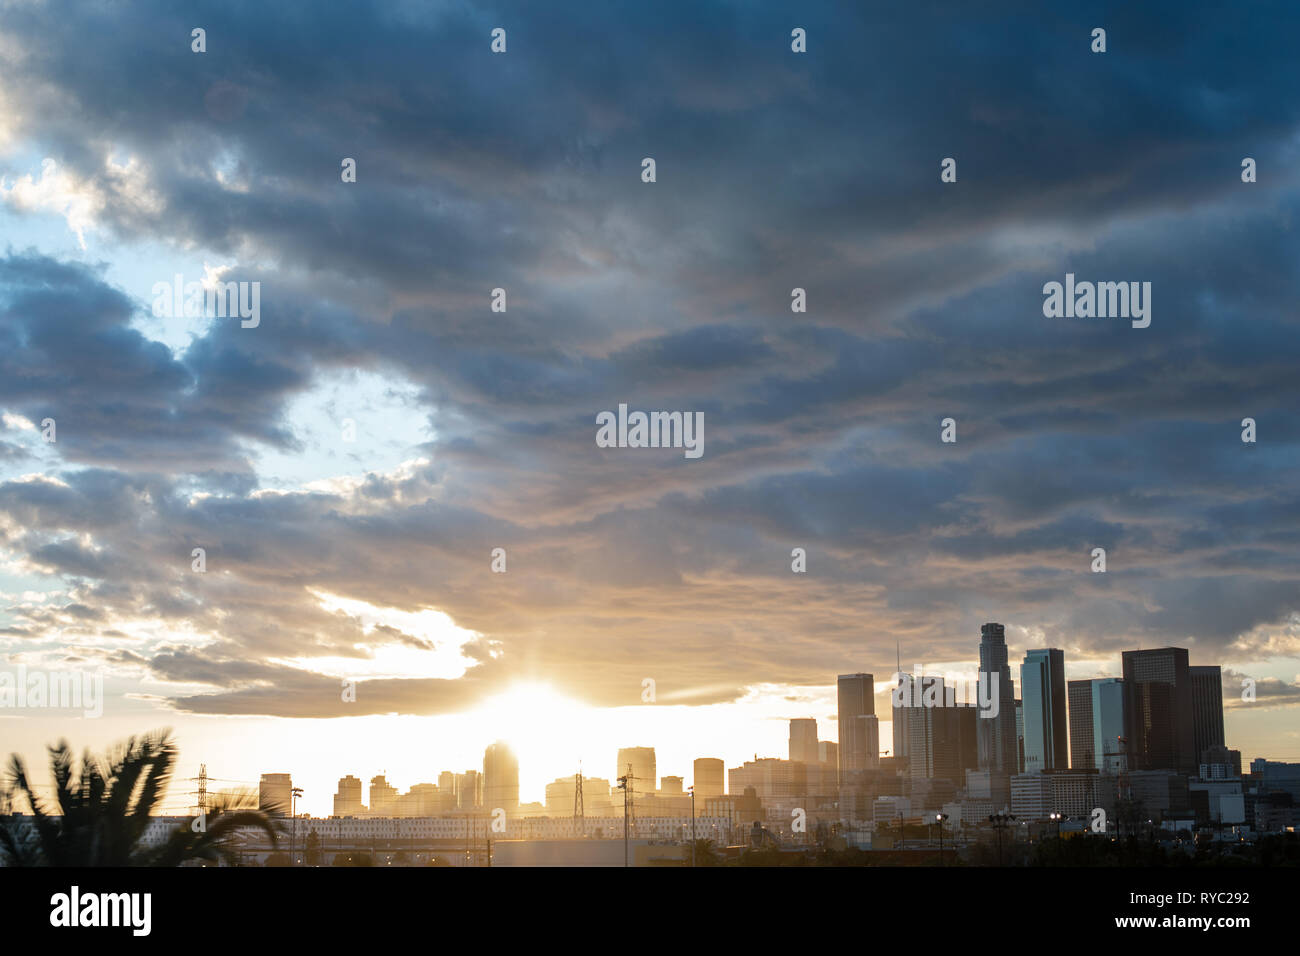 Gorgeous panoramic view of DTLA downtown Los Angeles with the sun setting behind skyscrapers - Stock Image